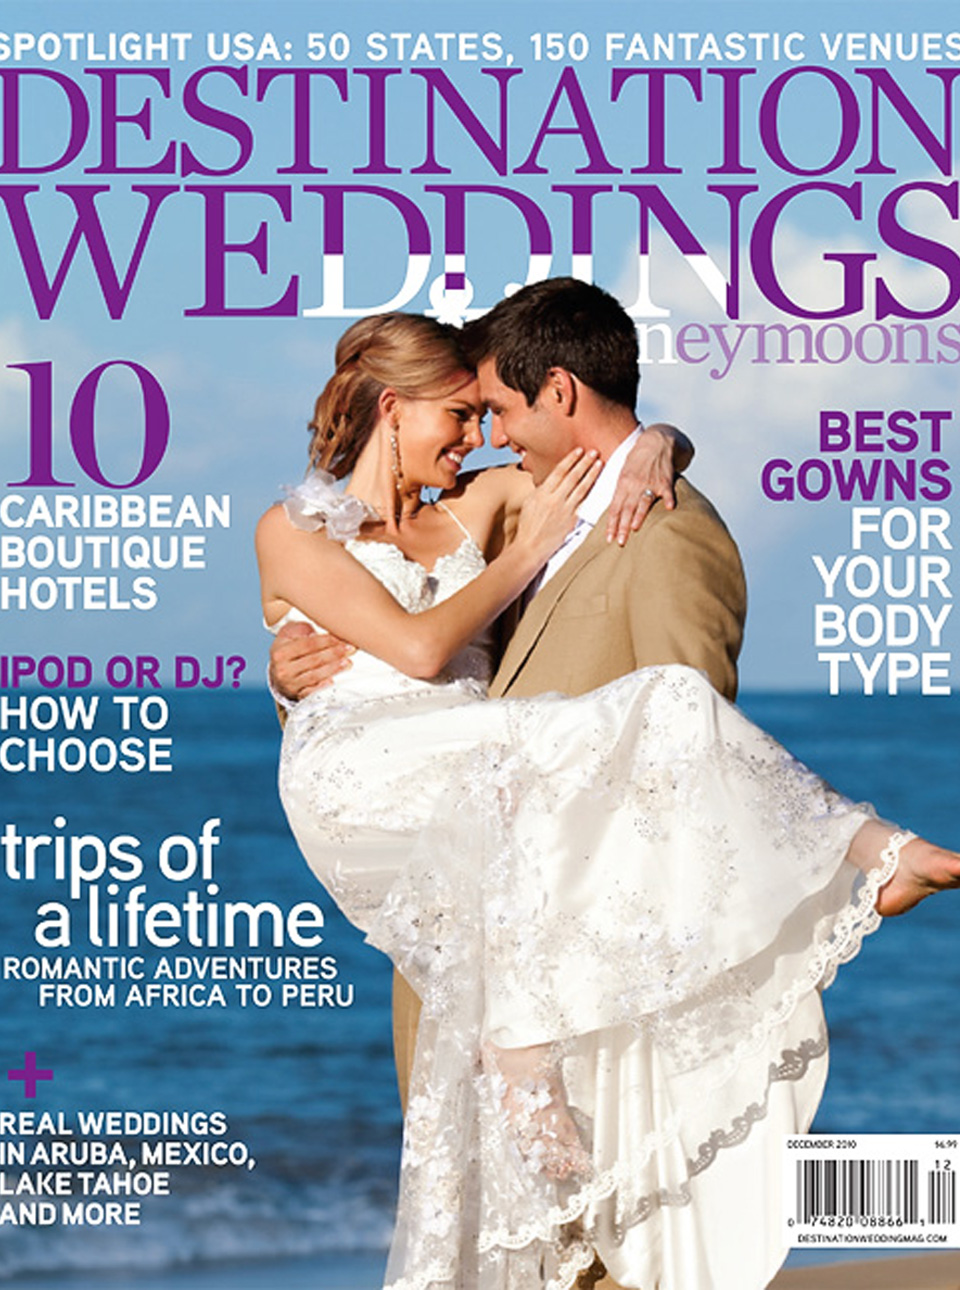 Destination Weddings Cover.jpg